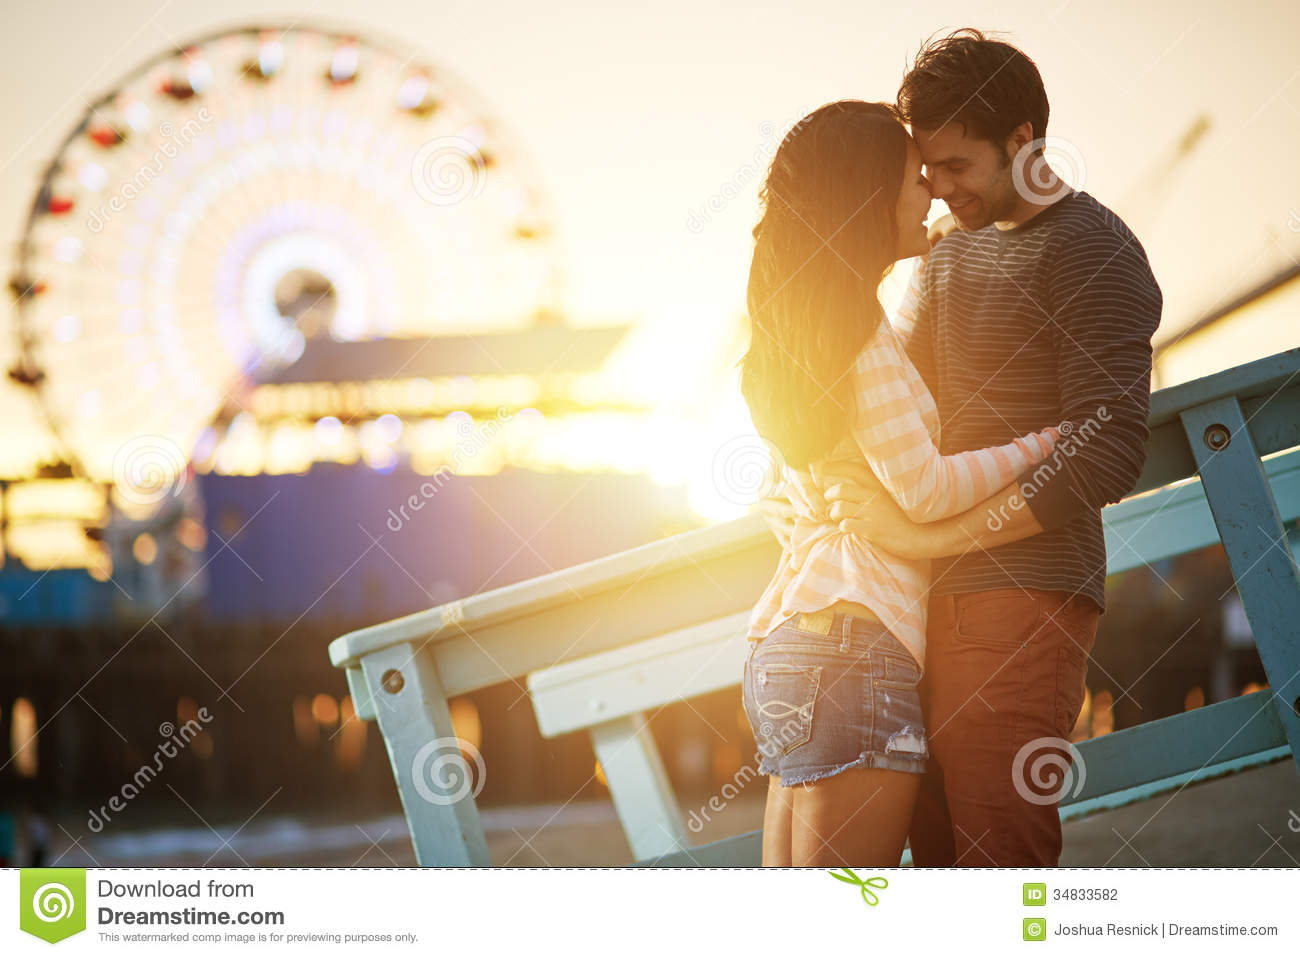 Romantic Stock Photos Royalty Free Images Dreamstime